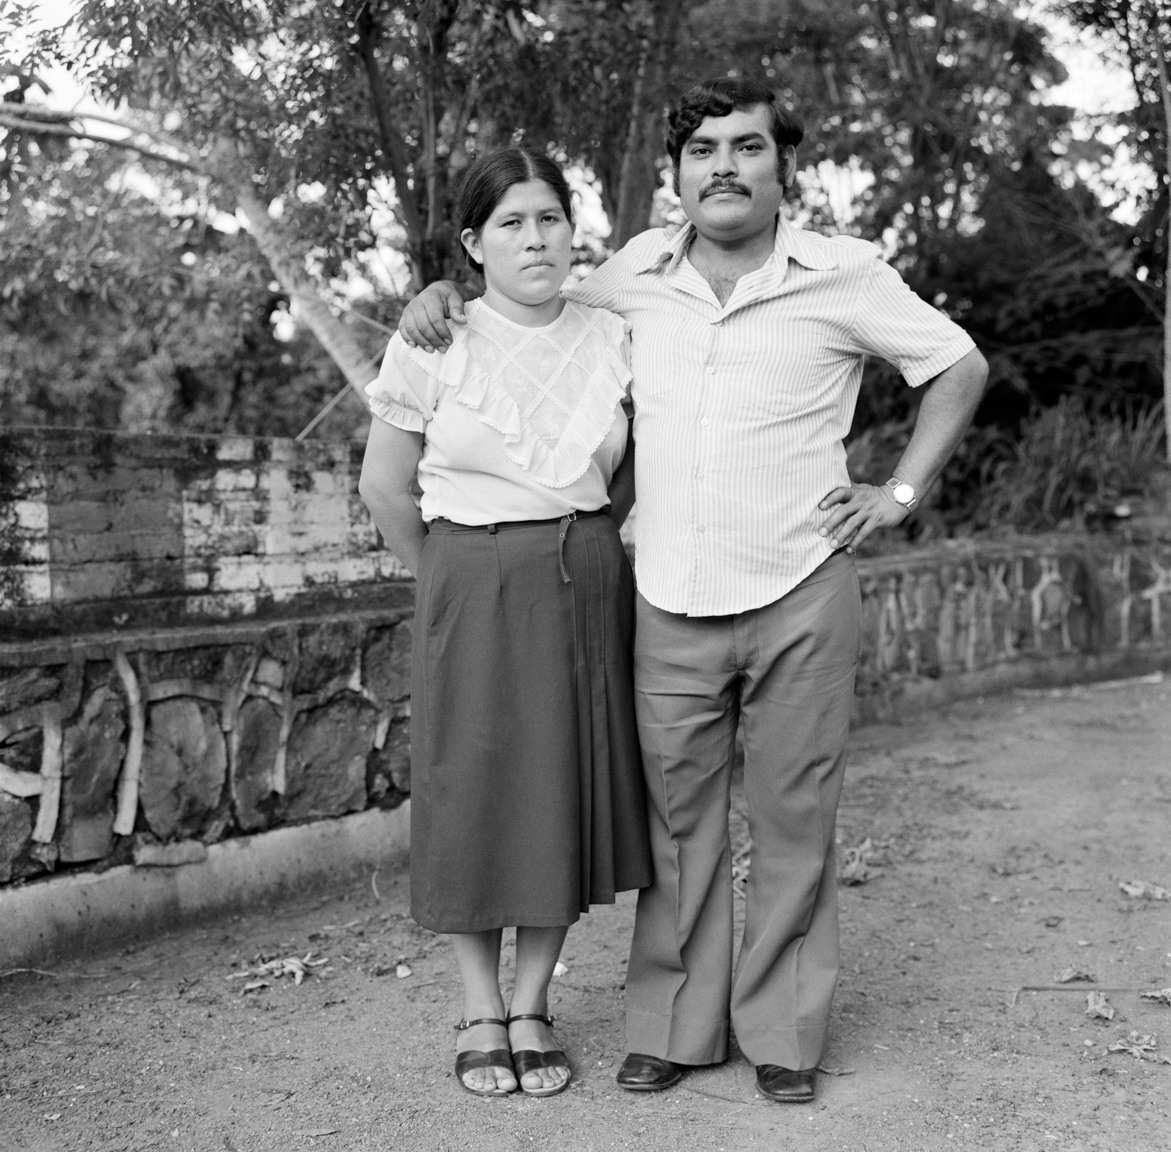 A Salvadoran couple stand for a photograph October 15, 1983 in Santa Tecla, El Salvador.